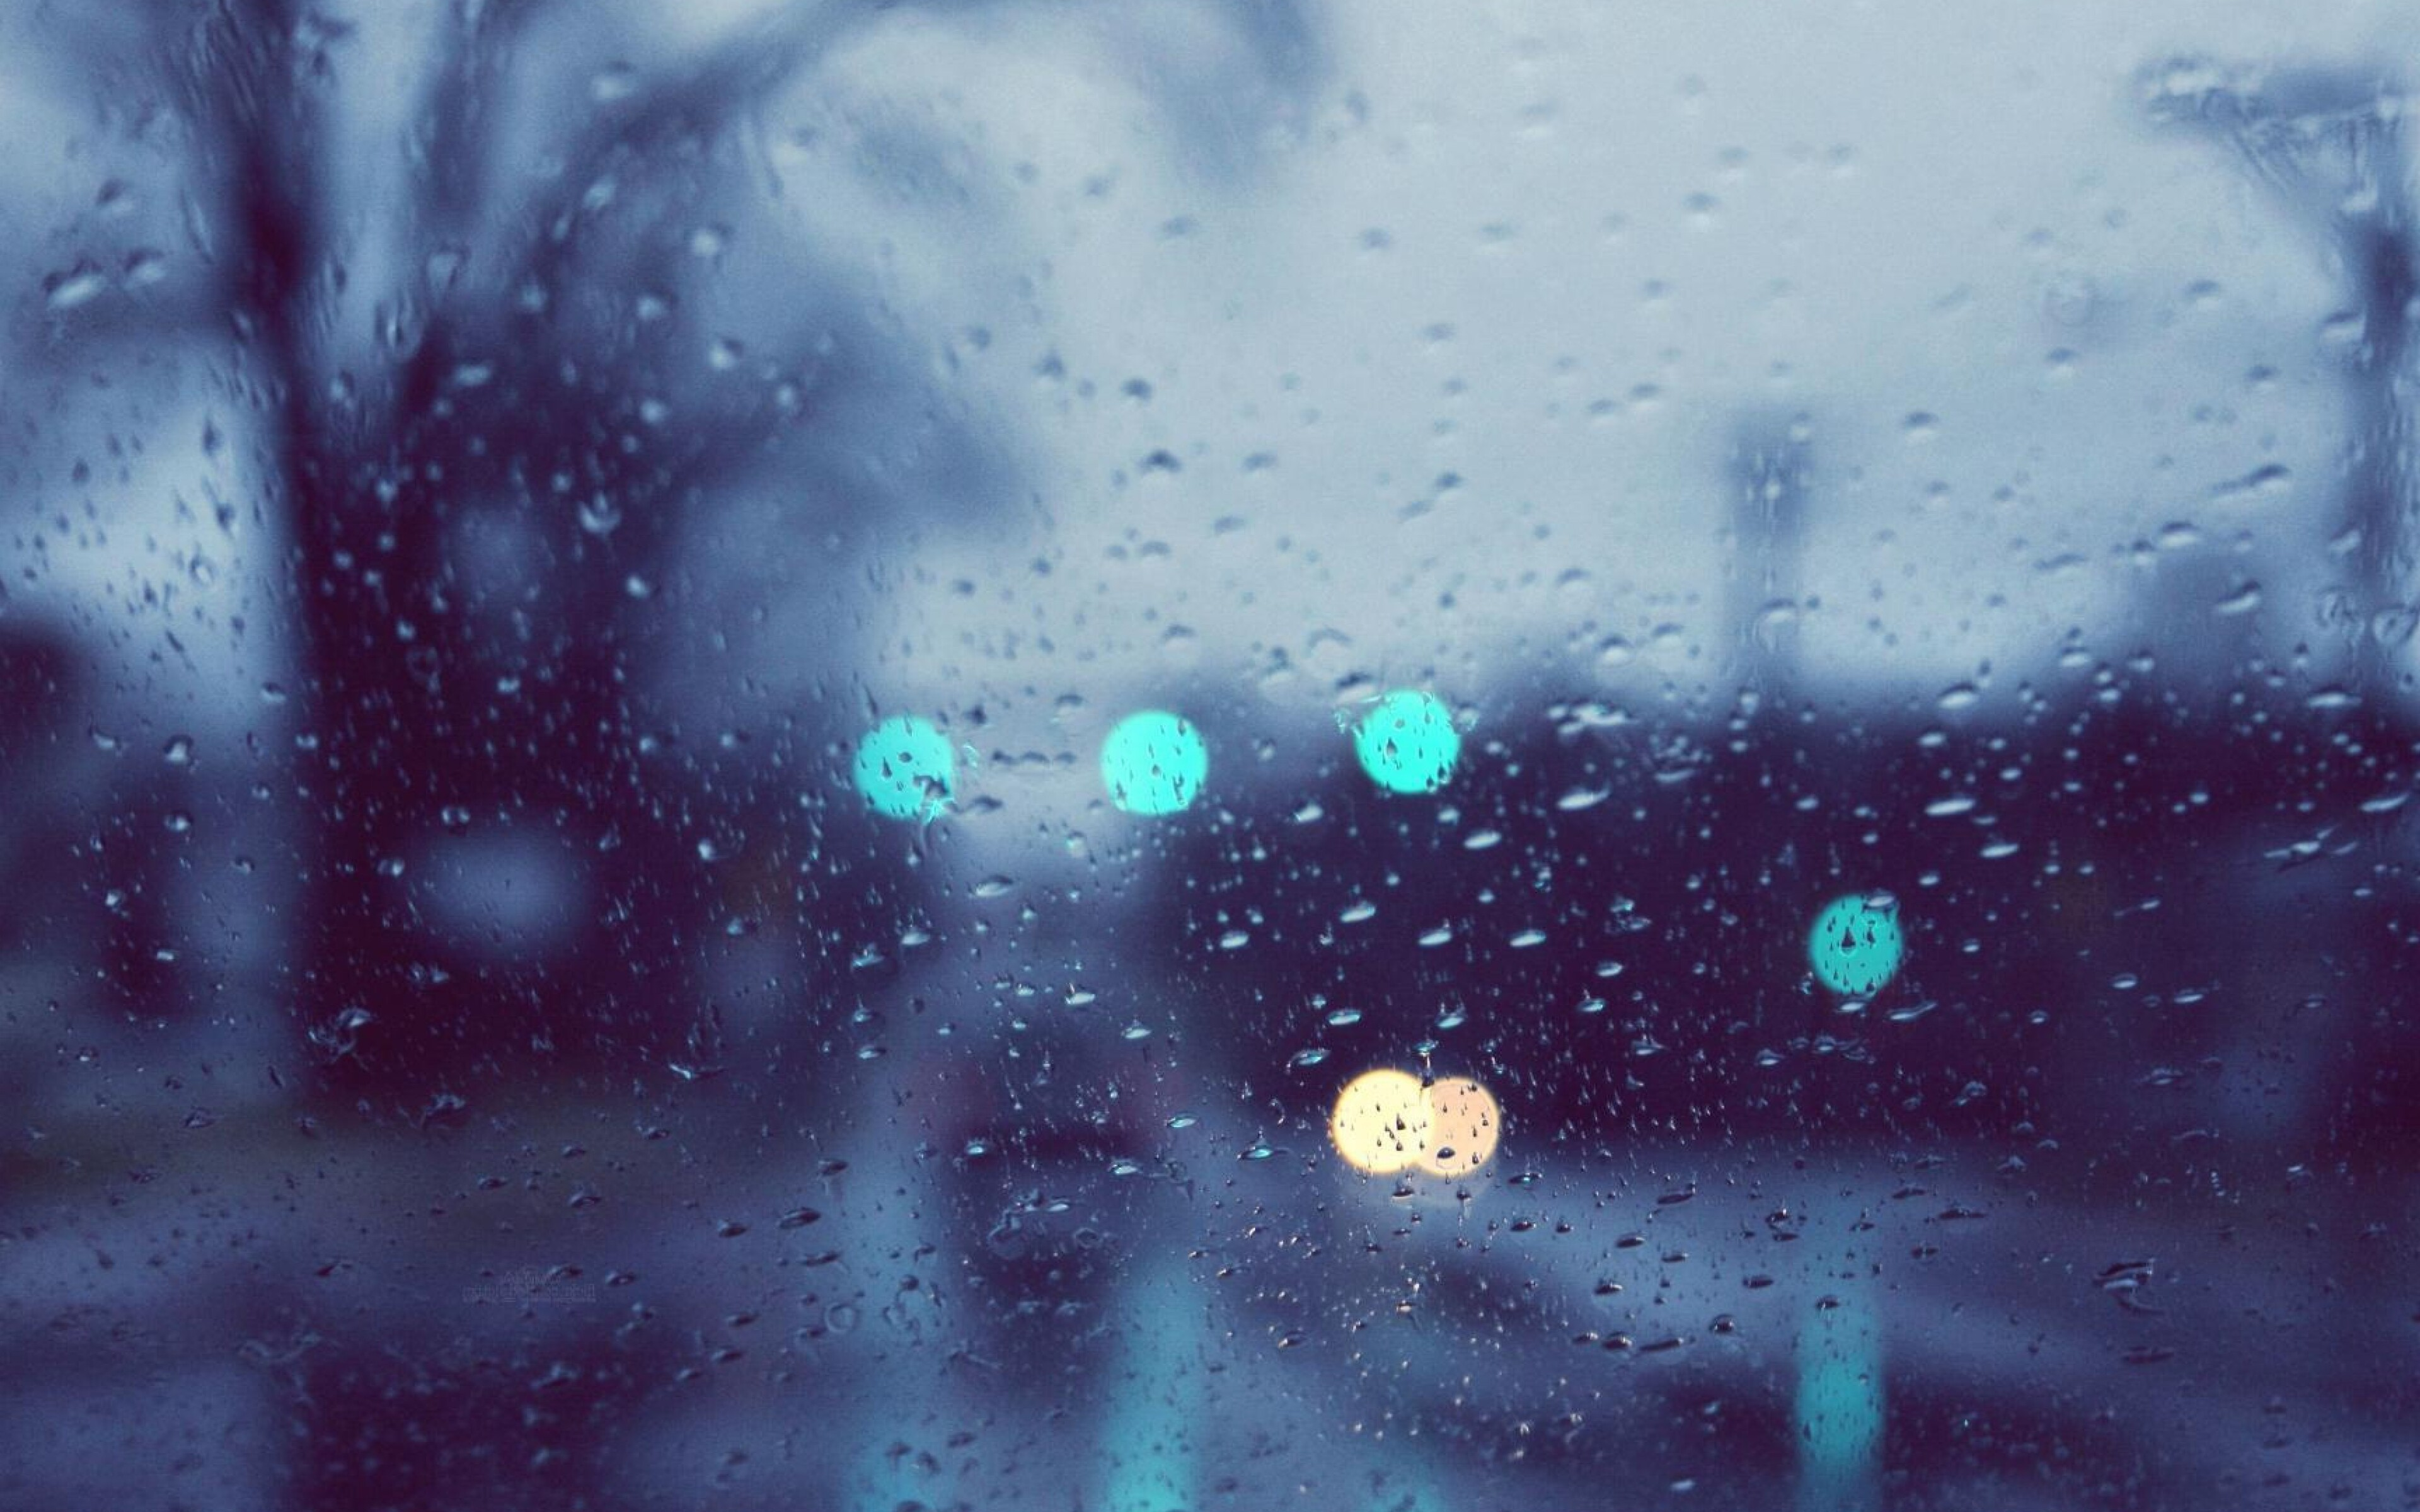 rain-glare-glass-drops.jpg